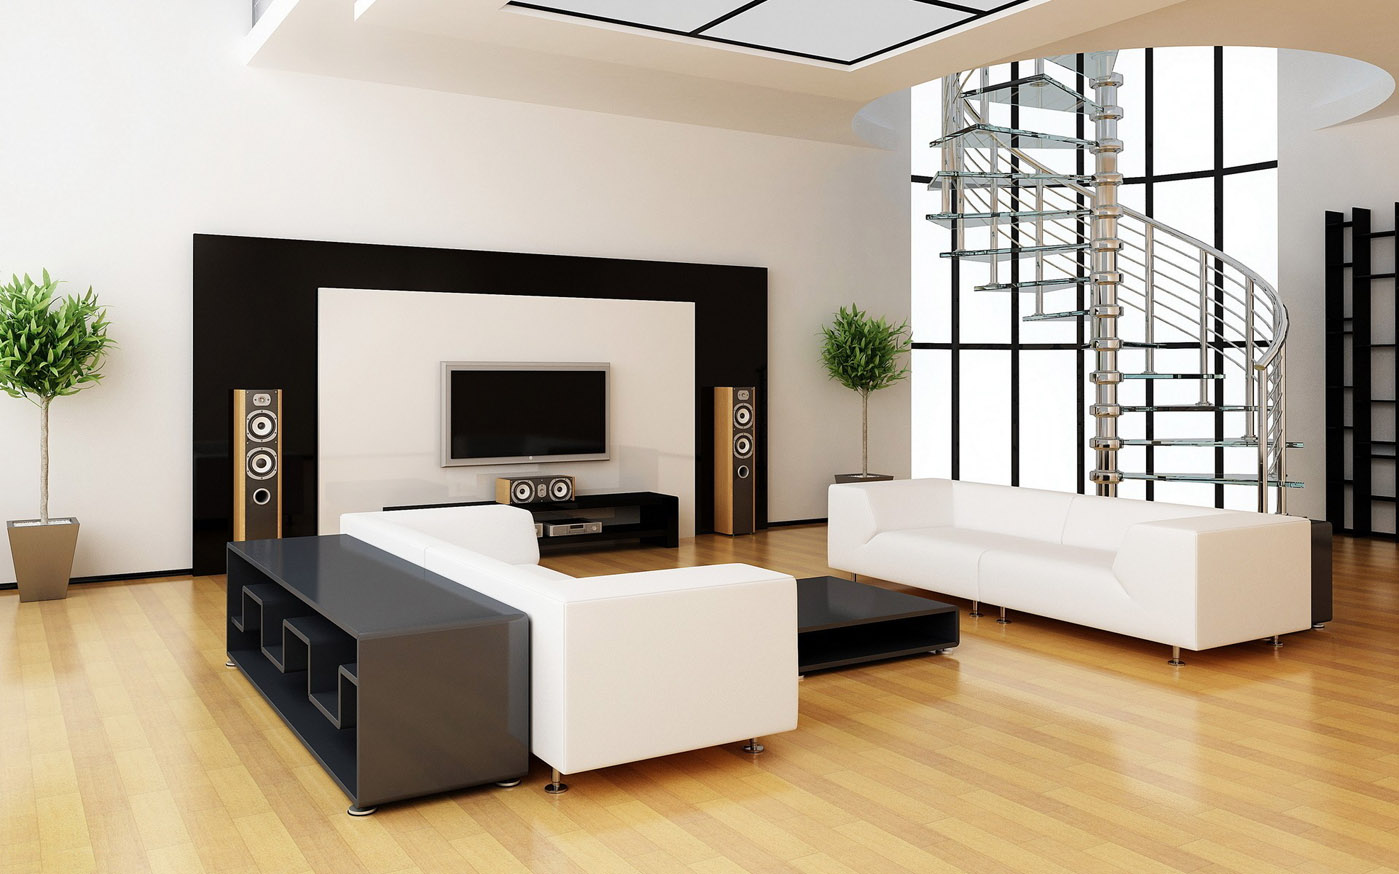 Modern living room design ideas - Modern Living Room With Hardwood Floors